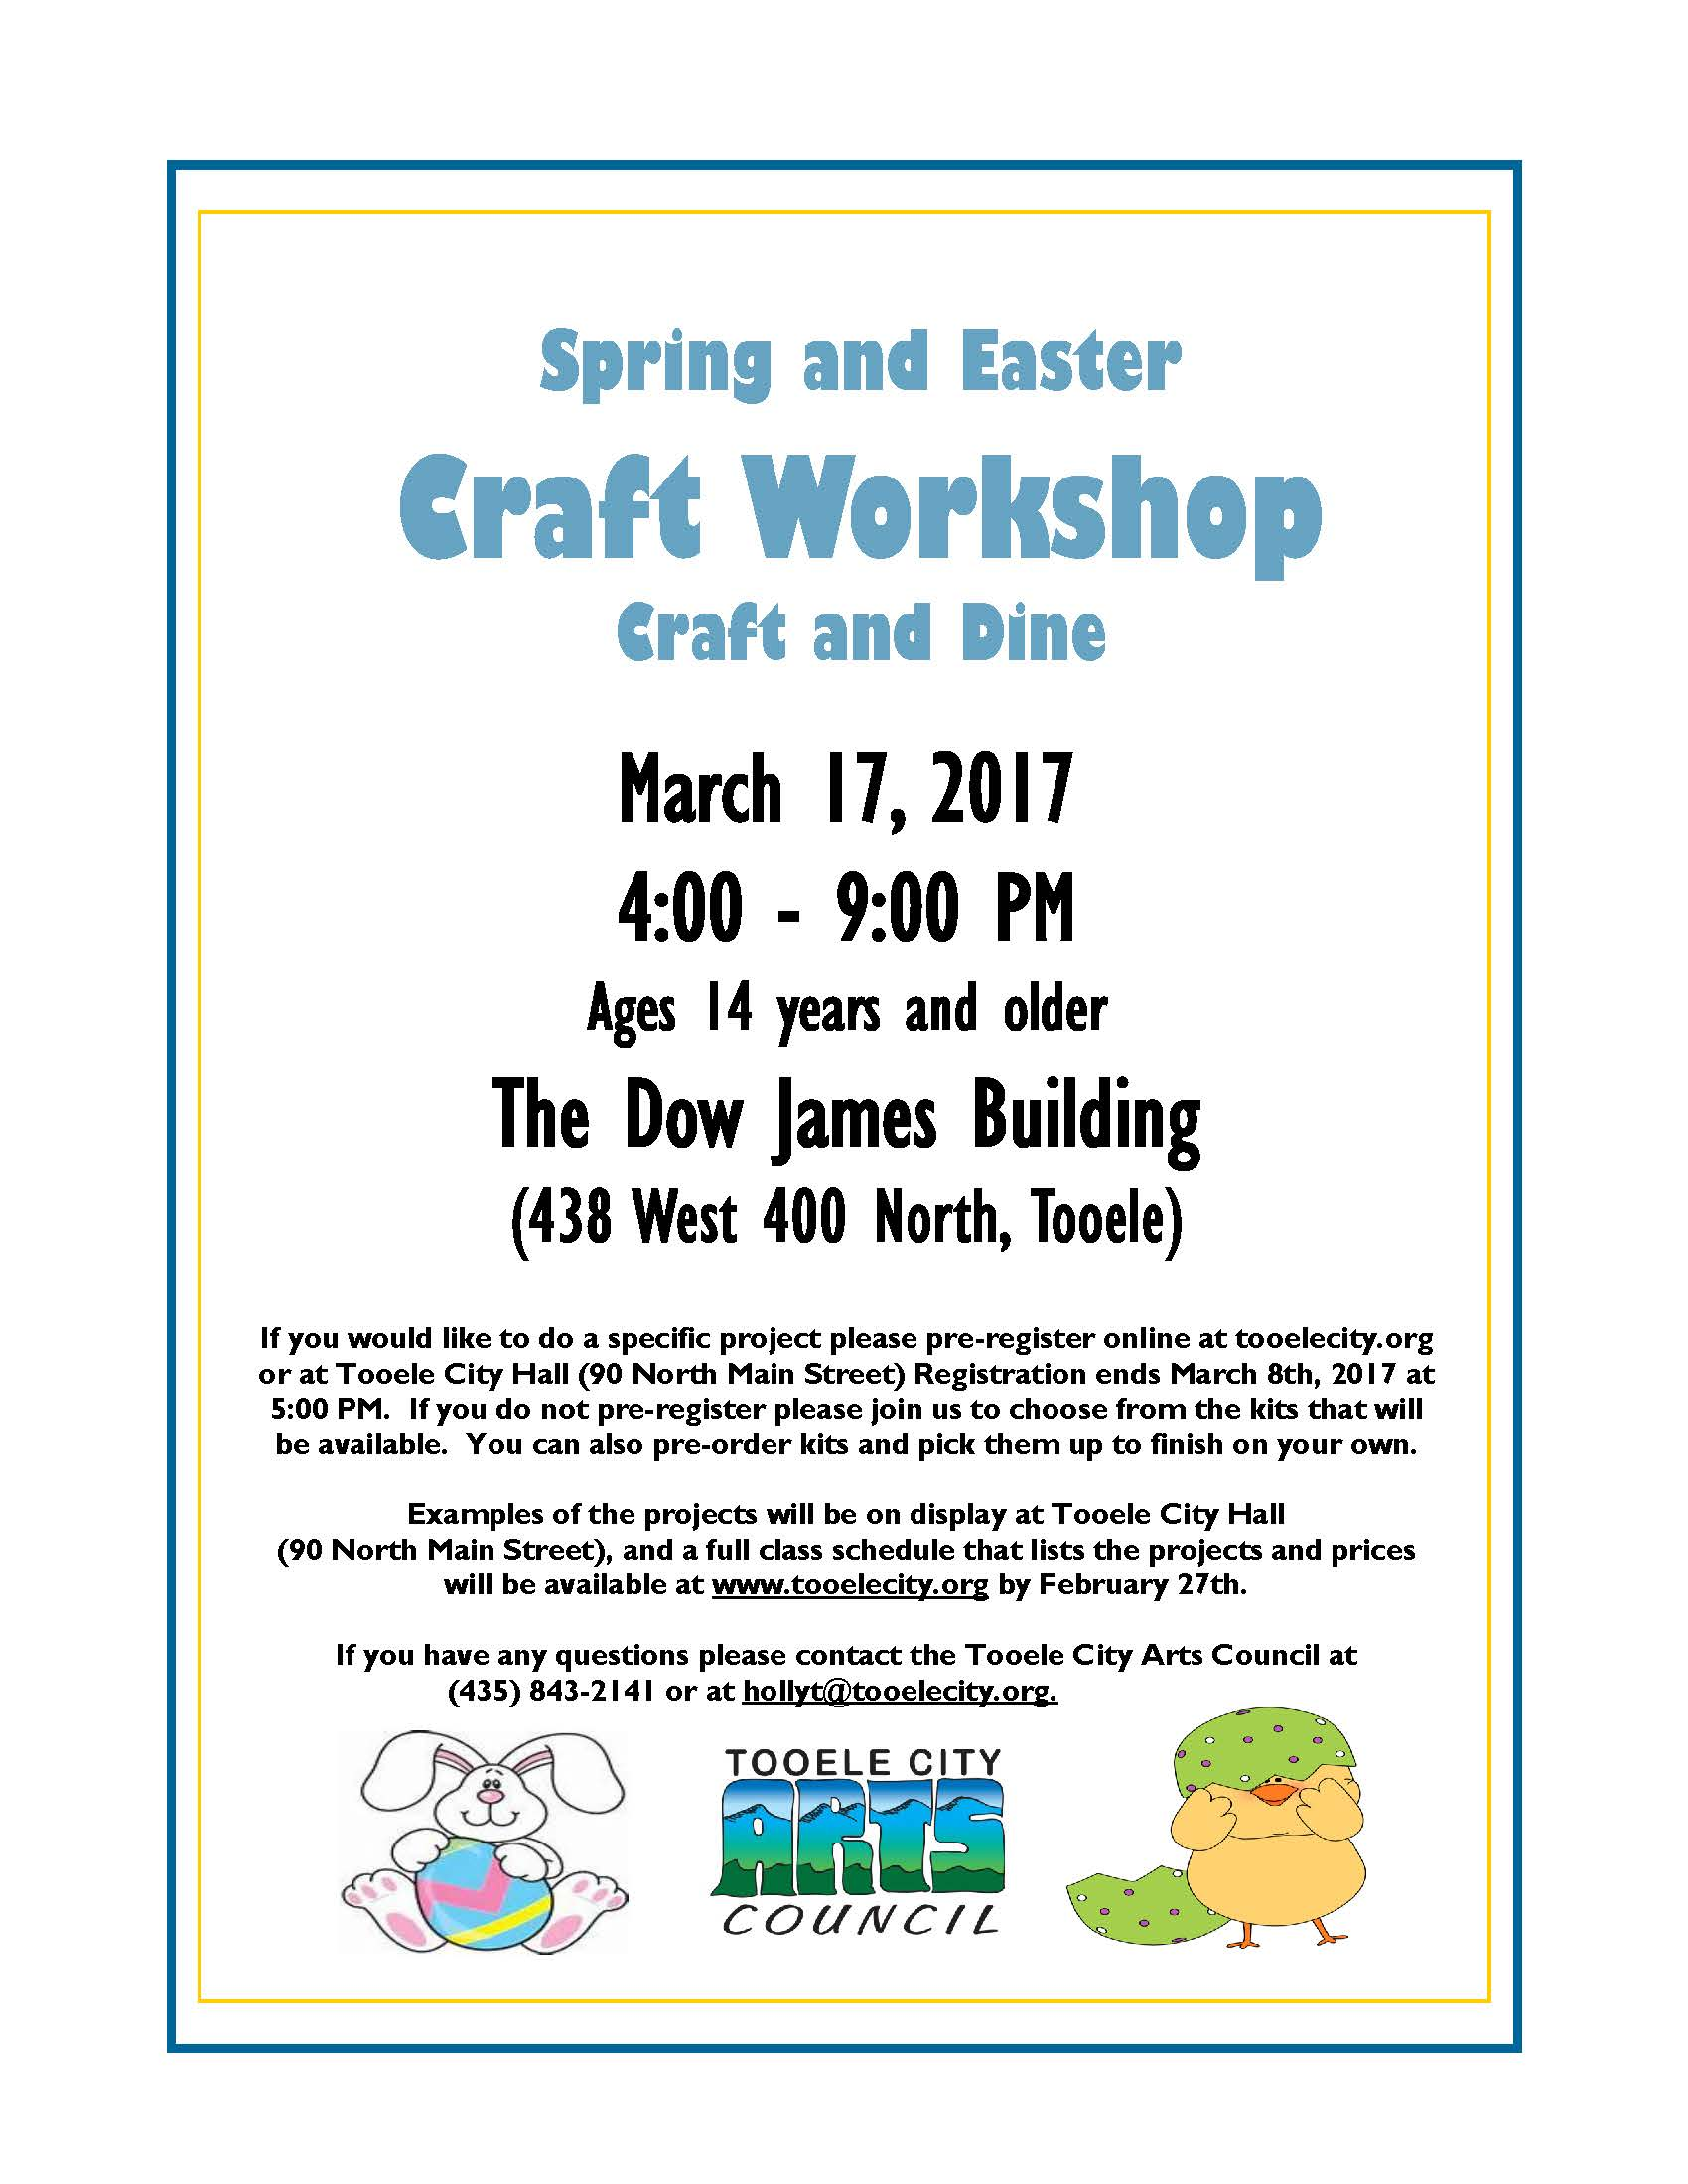 Easter and Spring Workshop 2017